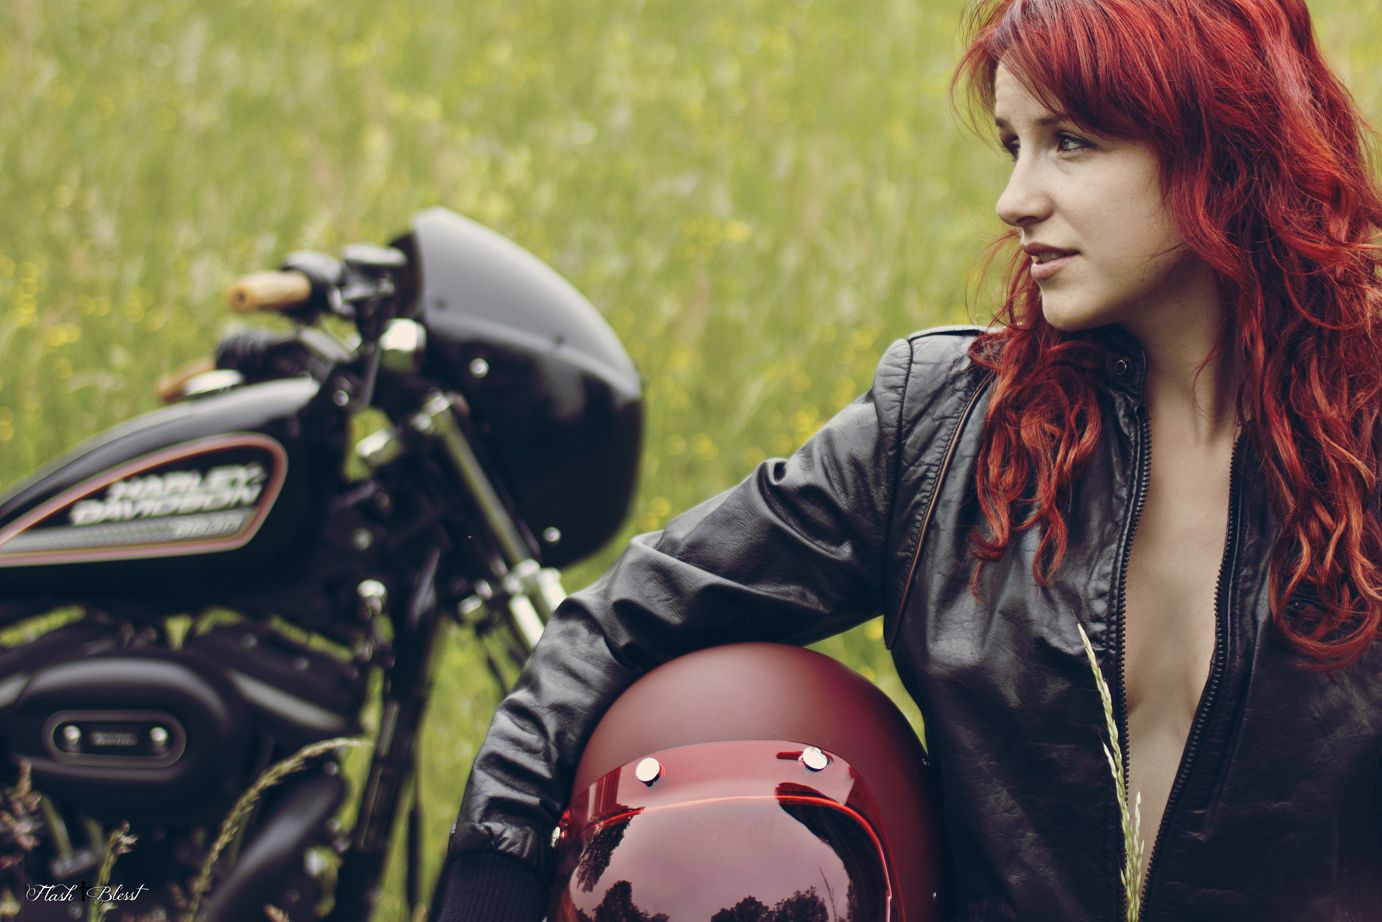 Motorcycle Girl 046 | Return of the Cafe Racers